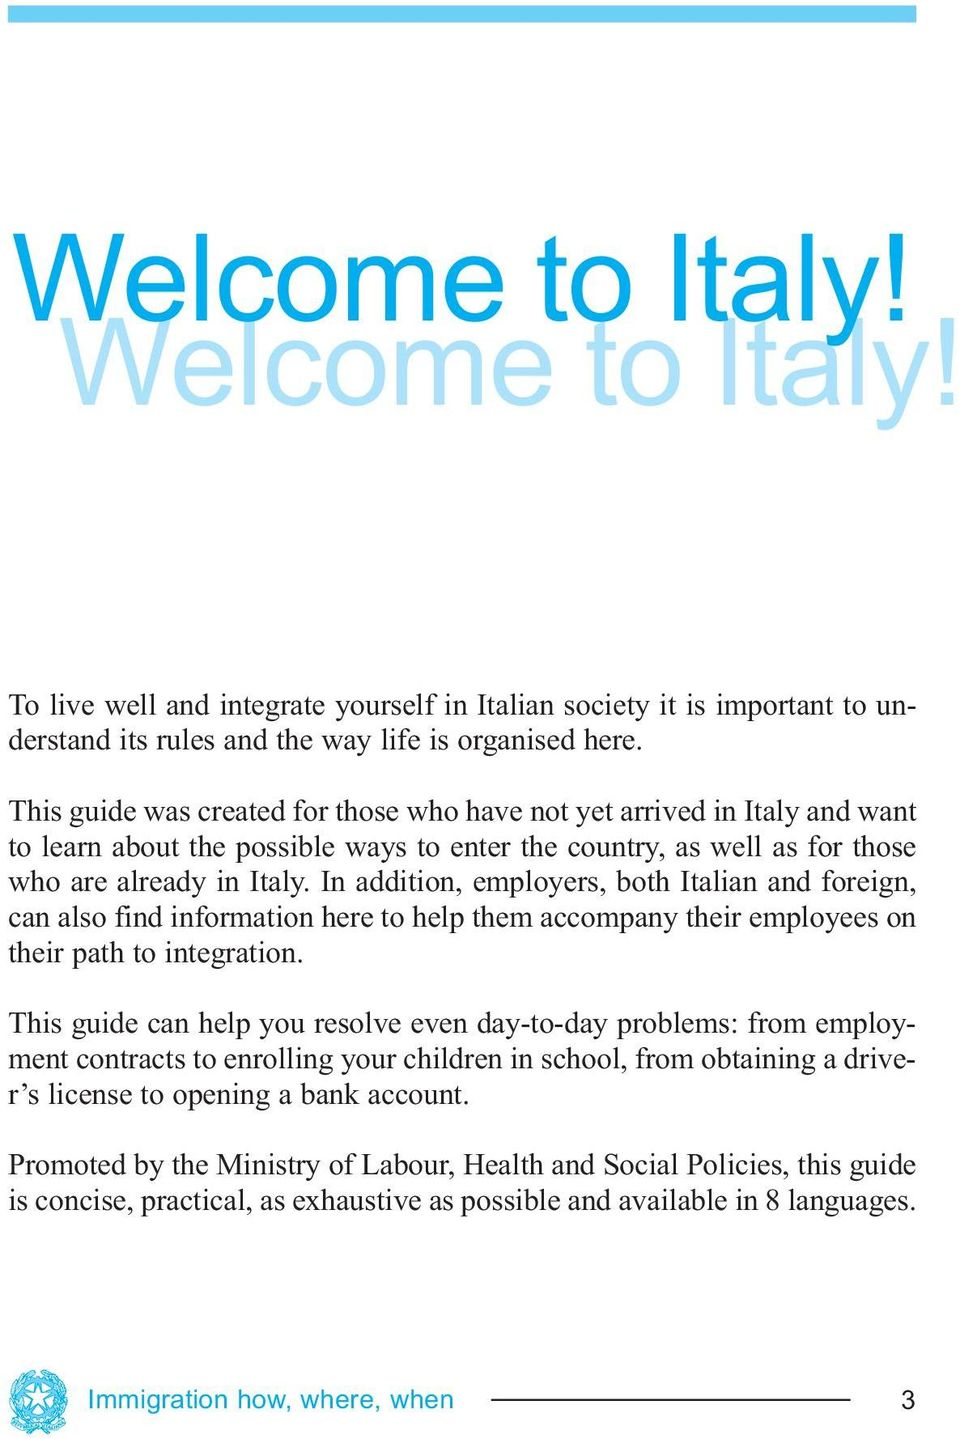 In addition, employers, both Italian and foreign, can also find information here to help them accompany their employees on their path to integration.